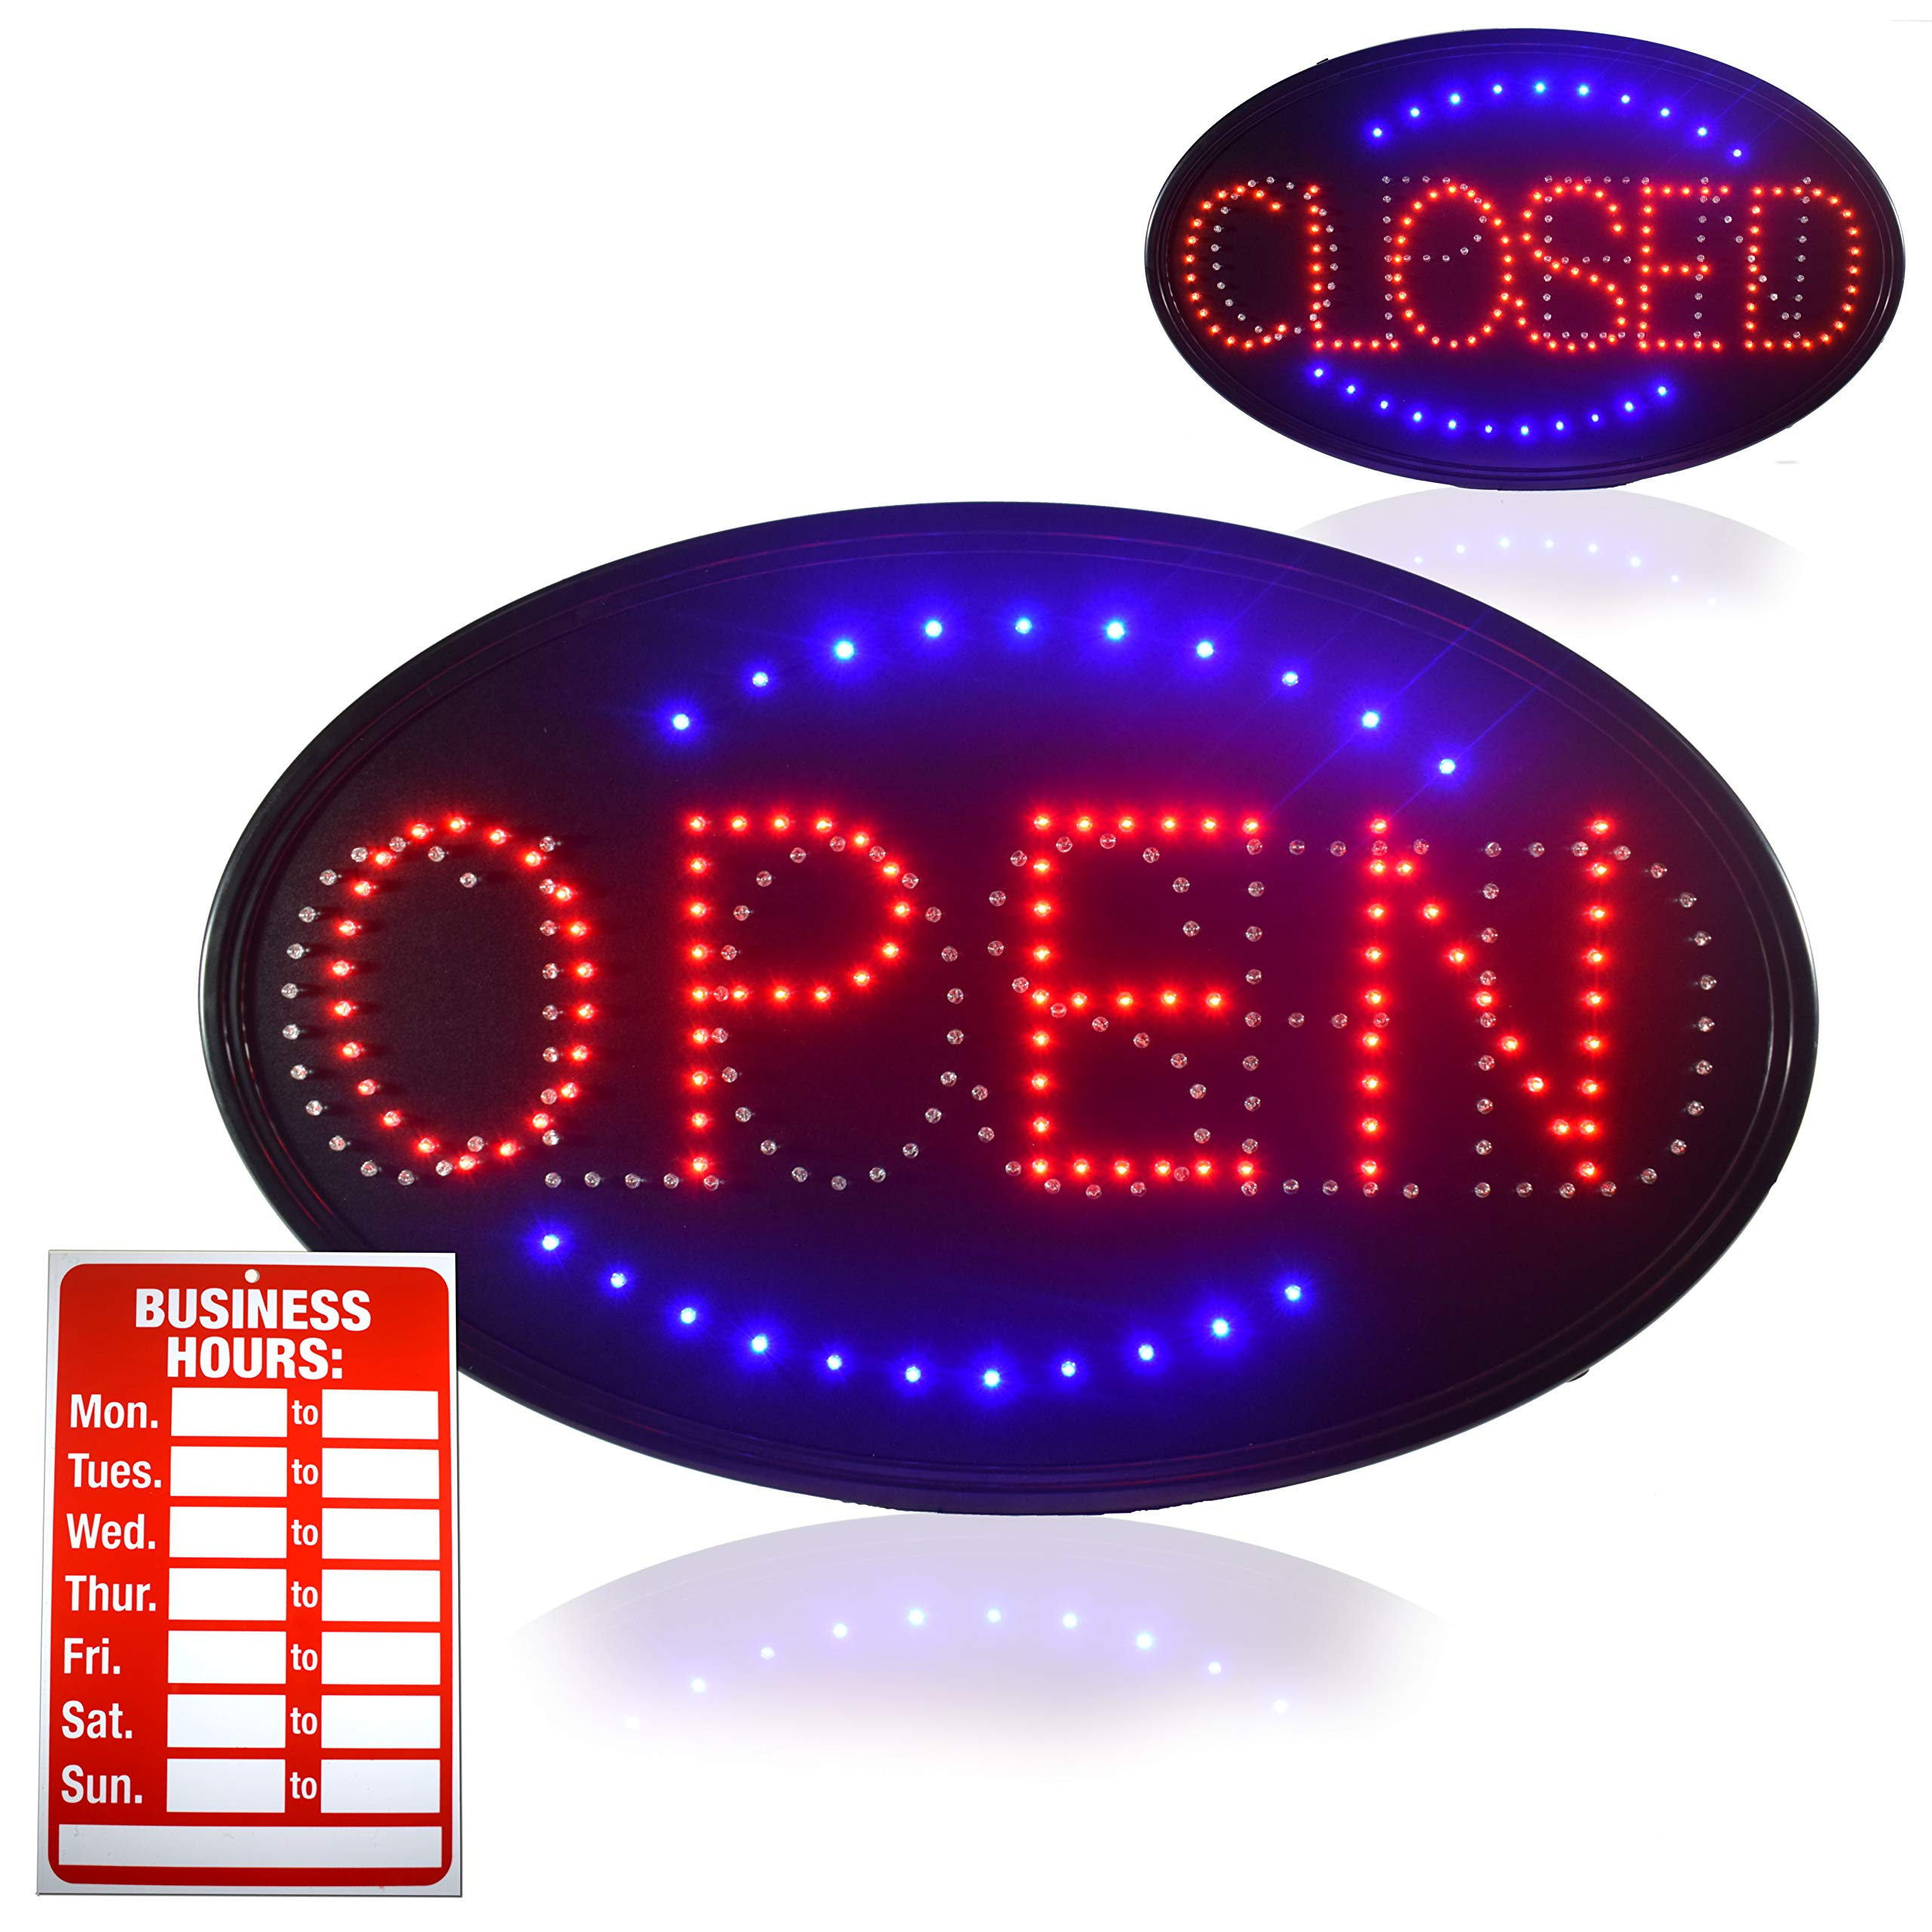 OPEN LED SIGN, Jumbo 23'' X 14'' Open Sign Advertisement Board with Electric Powered Display and Ultra Bright Light and a Modern Design, Perfect for Coffee Shop, Bar, Hotel, Restaurant, Drugstore & more